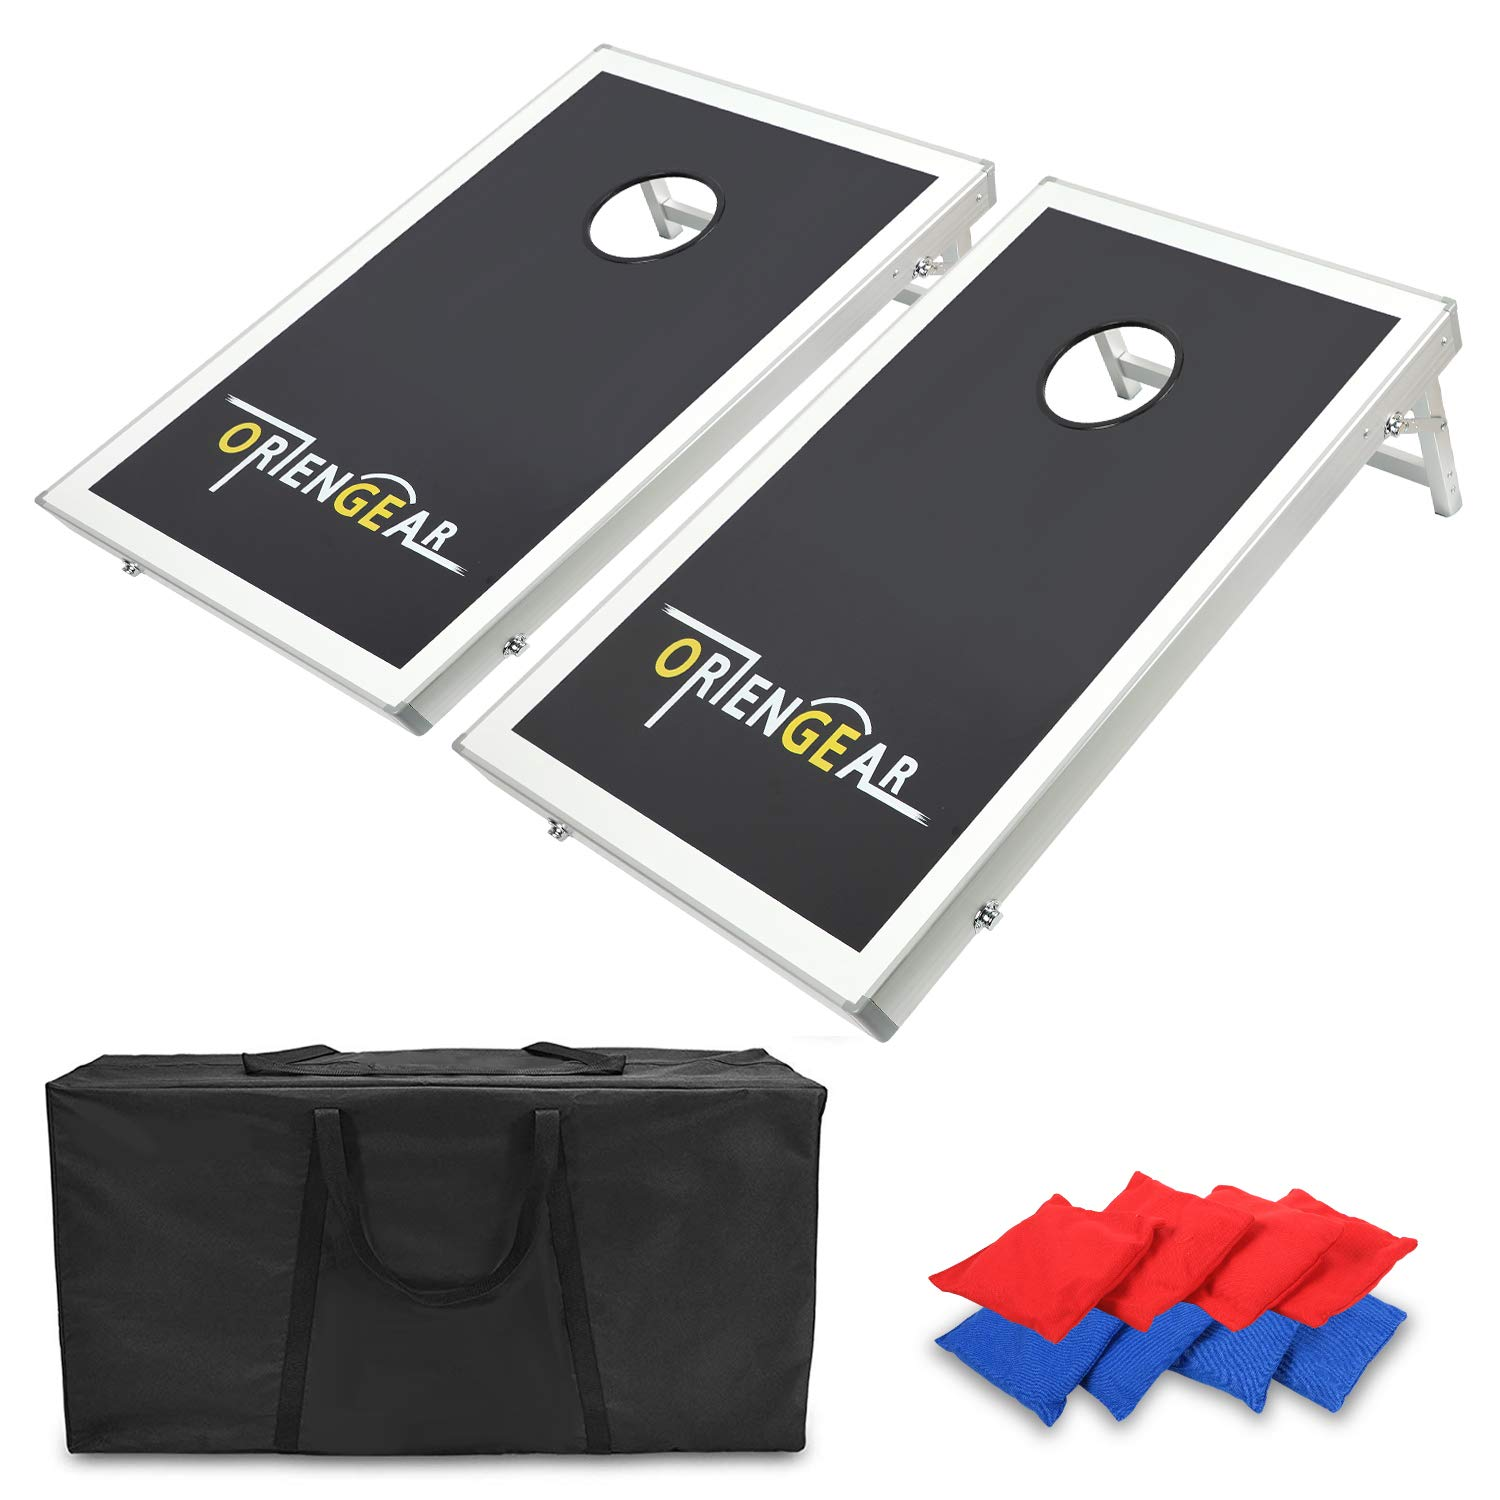 ORIENGEAR 3x2' Portable Cornhole Game Set Bean Bag Toss Game with 8 Bean Bags Carrying Case Aluminum Frame MDF Board by ORIENGEAR